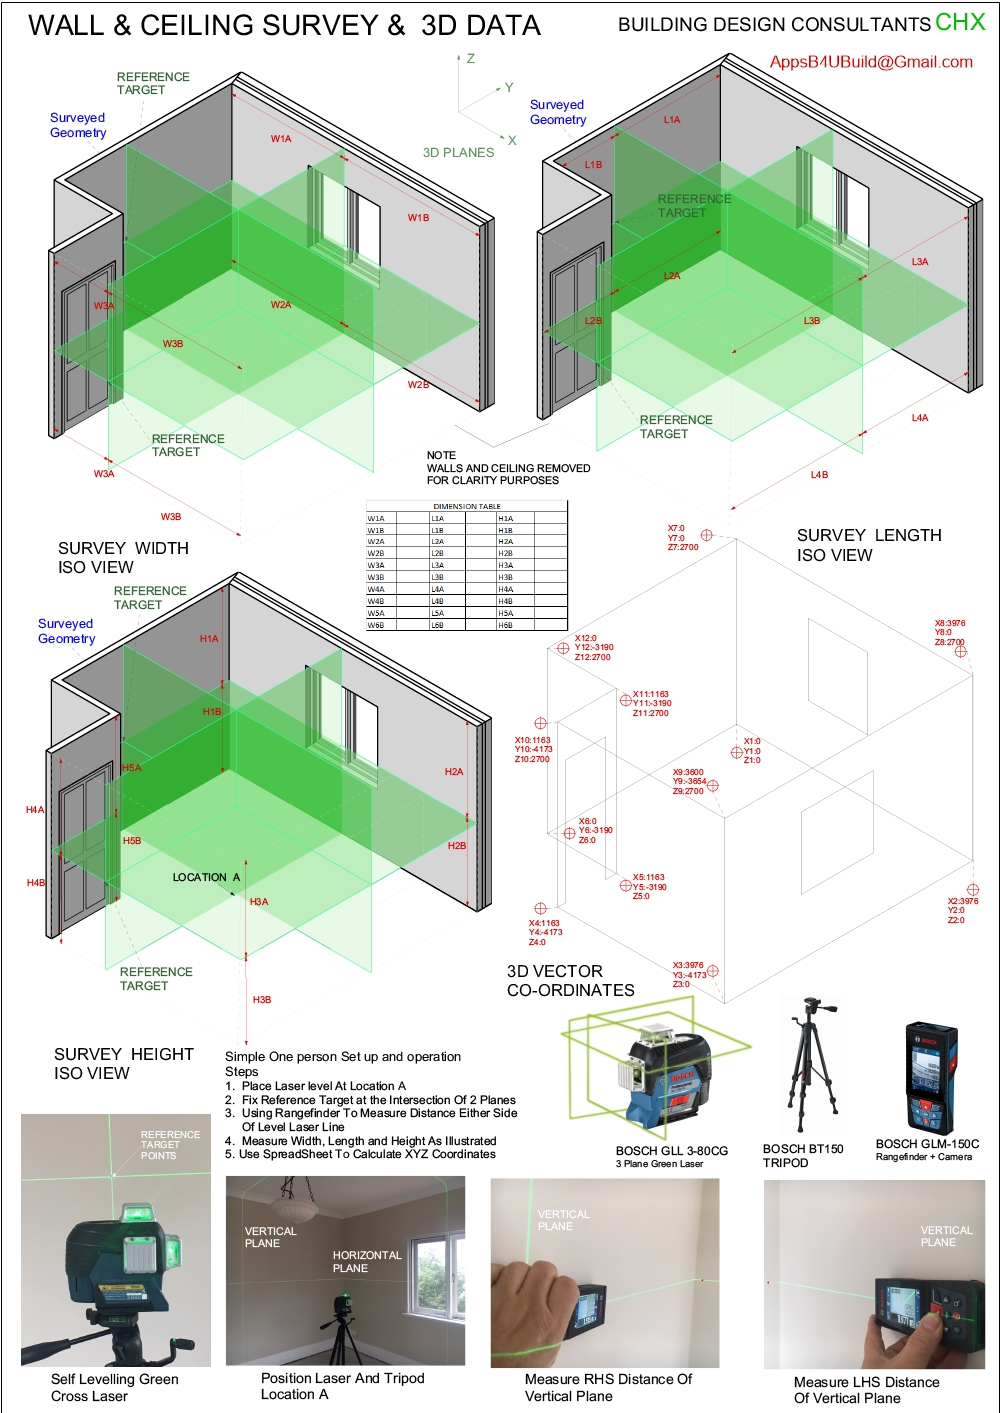 Checking Room Dimensions (XYZ Coordinates) with Bosch Lasers